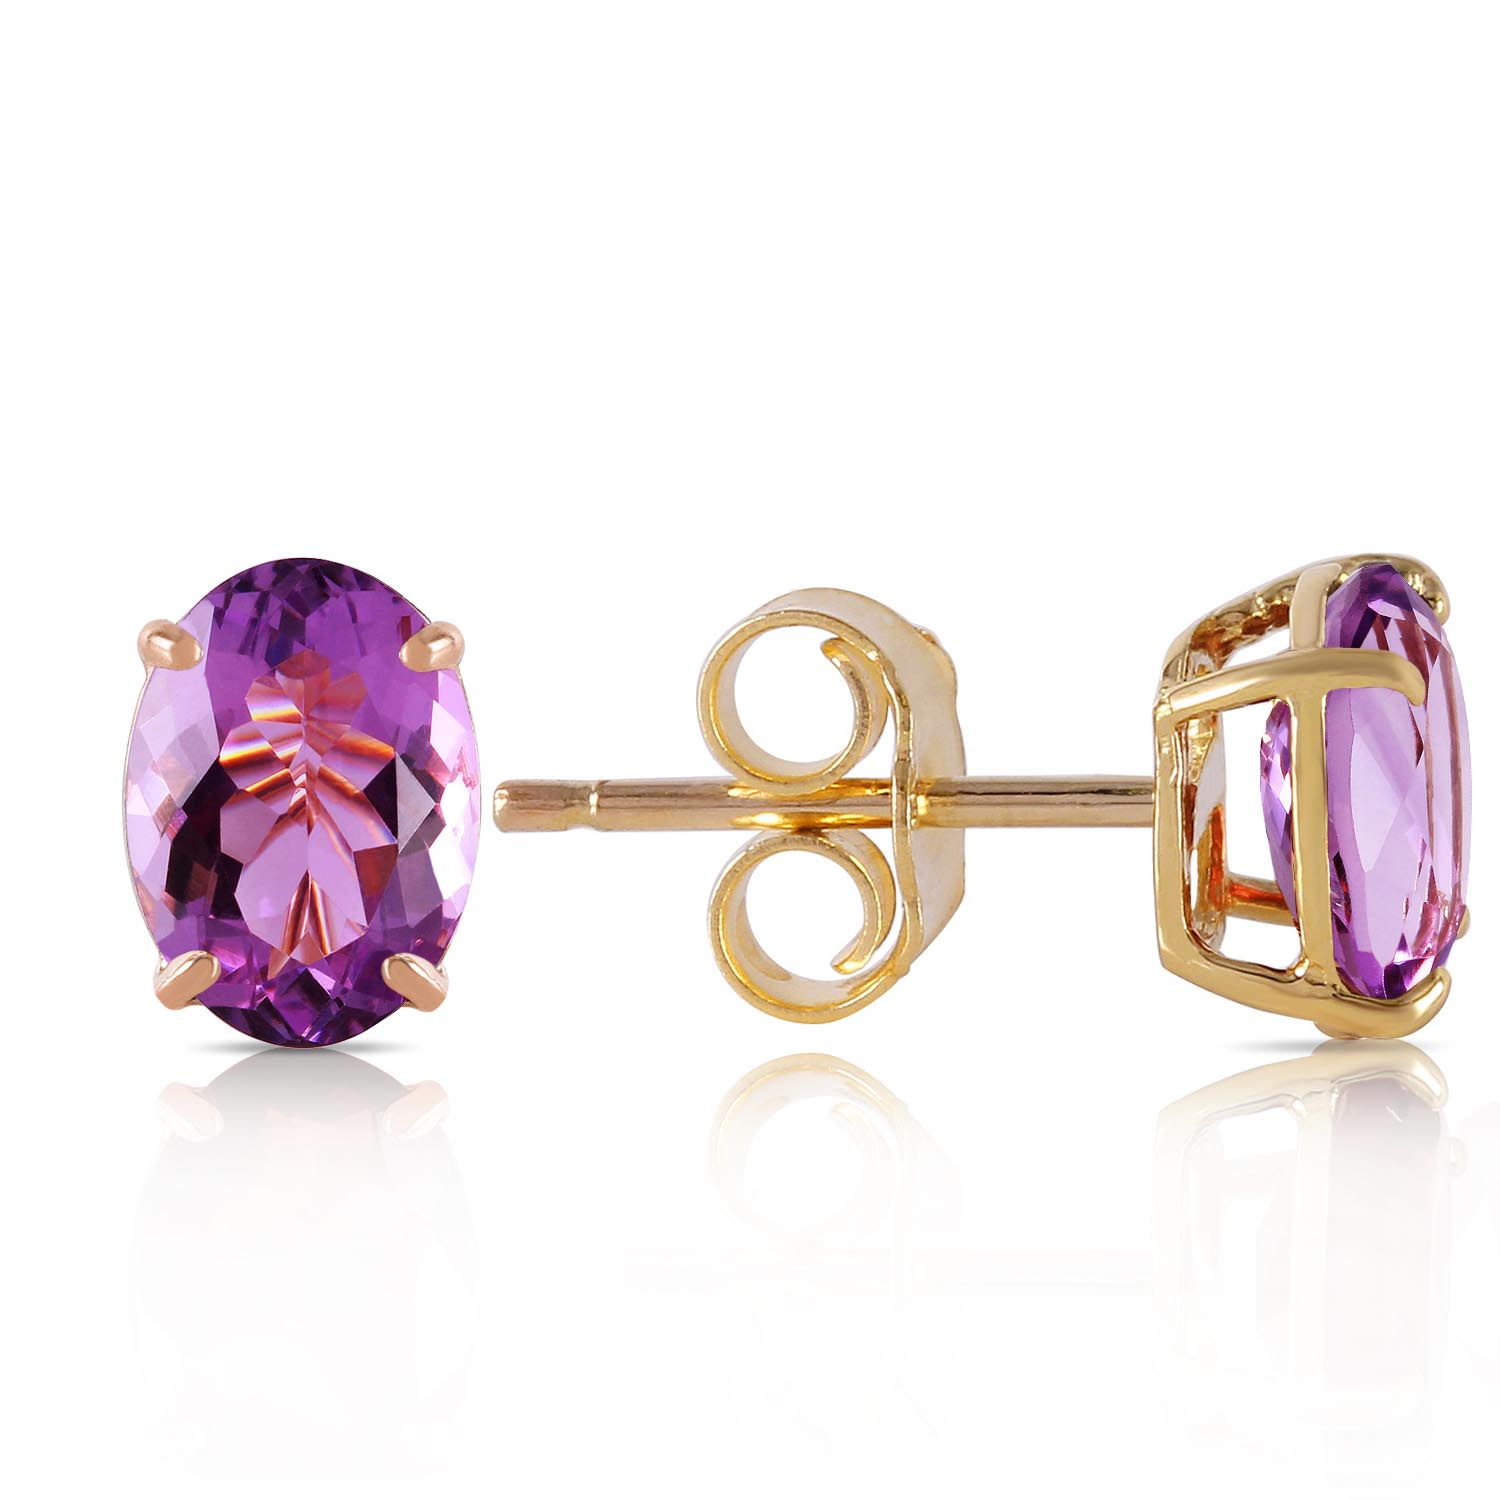 Amethyst Stud Earrings 1.8ctw in 9ct Gold